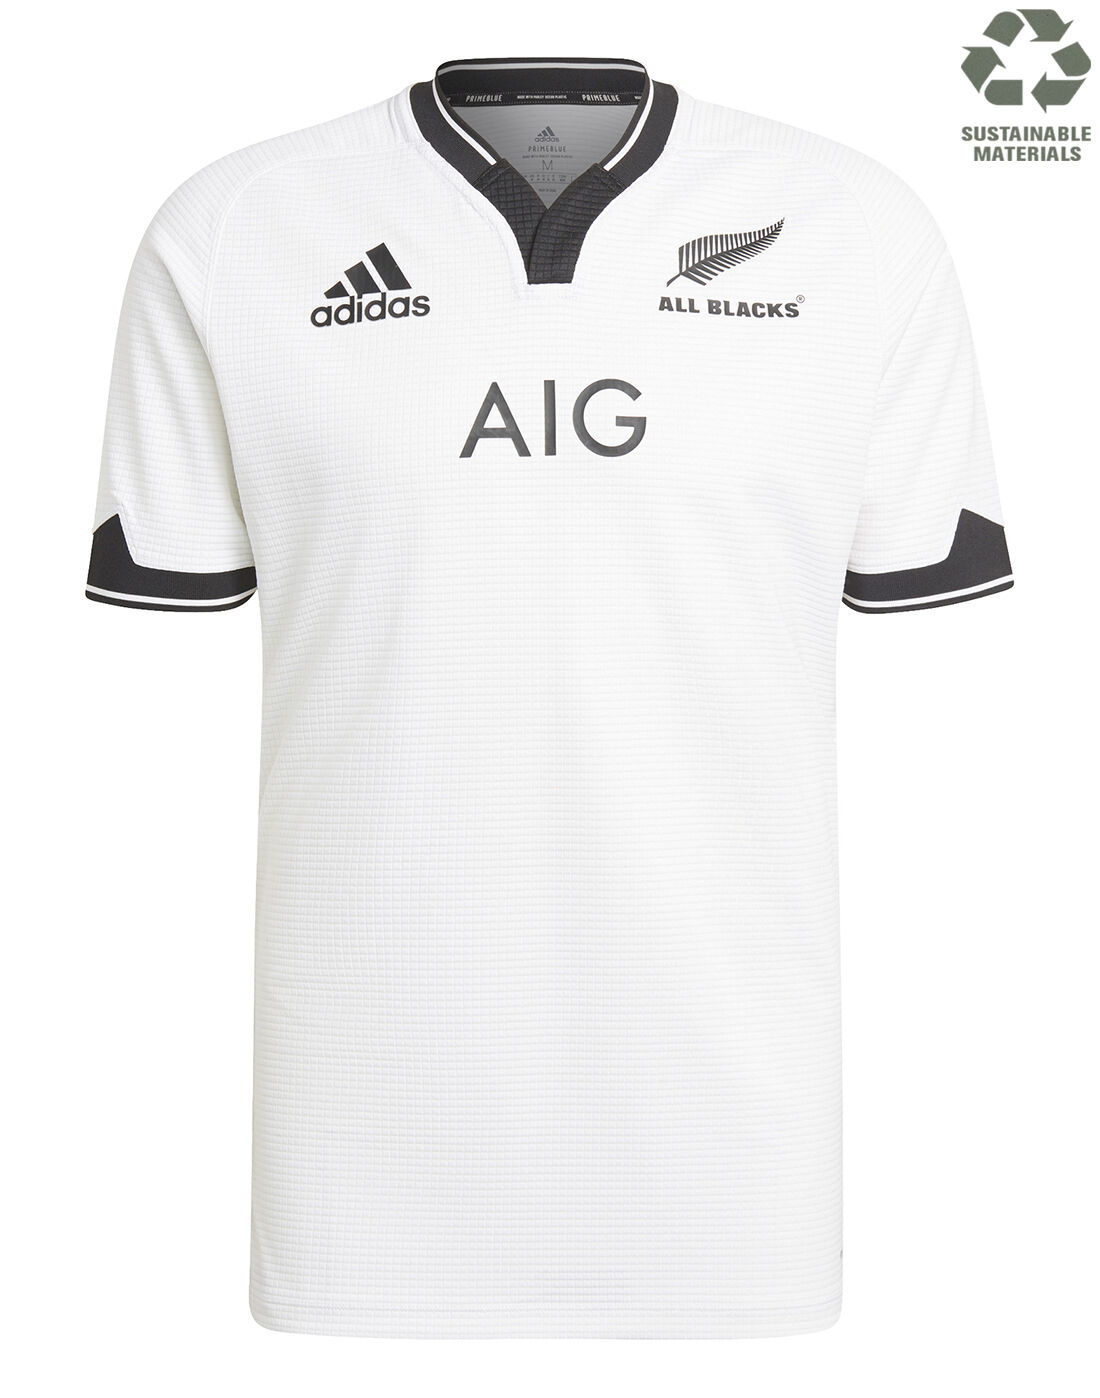 adidas Adult All Black 21/22 Away Jersey - White | Life Style ...